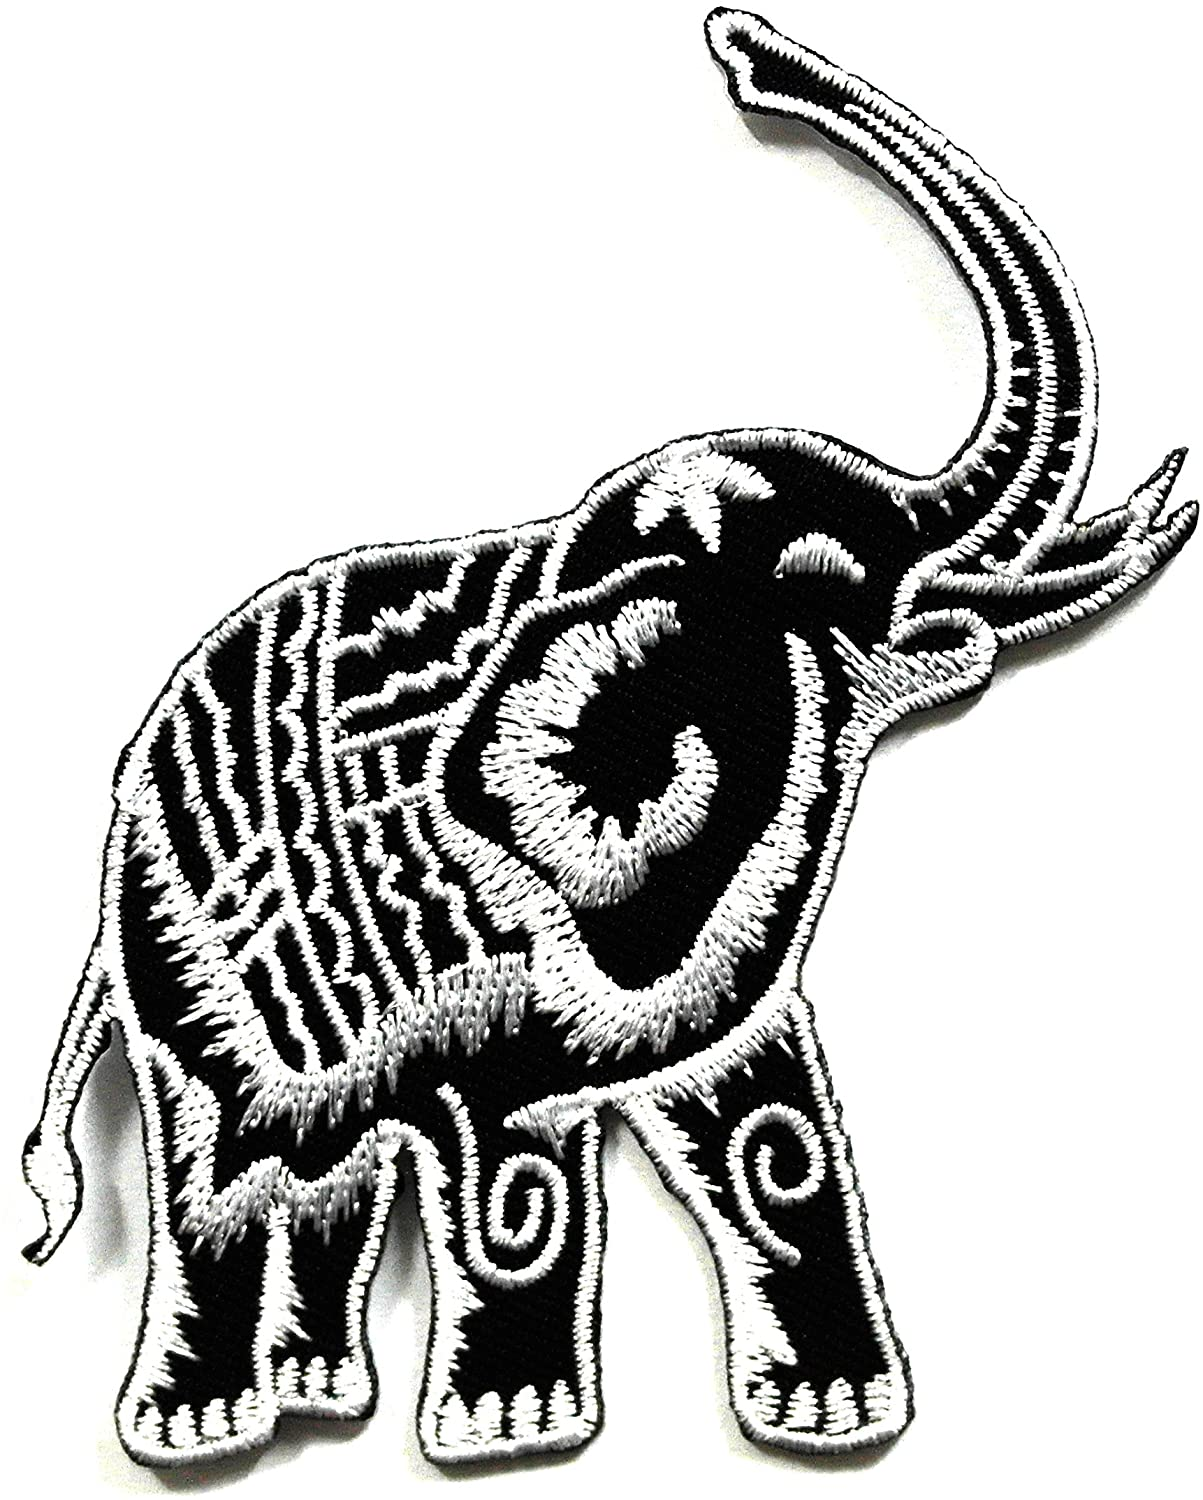 Silver Elephant Patch - Applique Embroidered patches - Iron on Patches - Backpack Patches - Size 8.5 x 10 Cm.